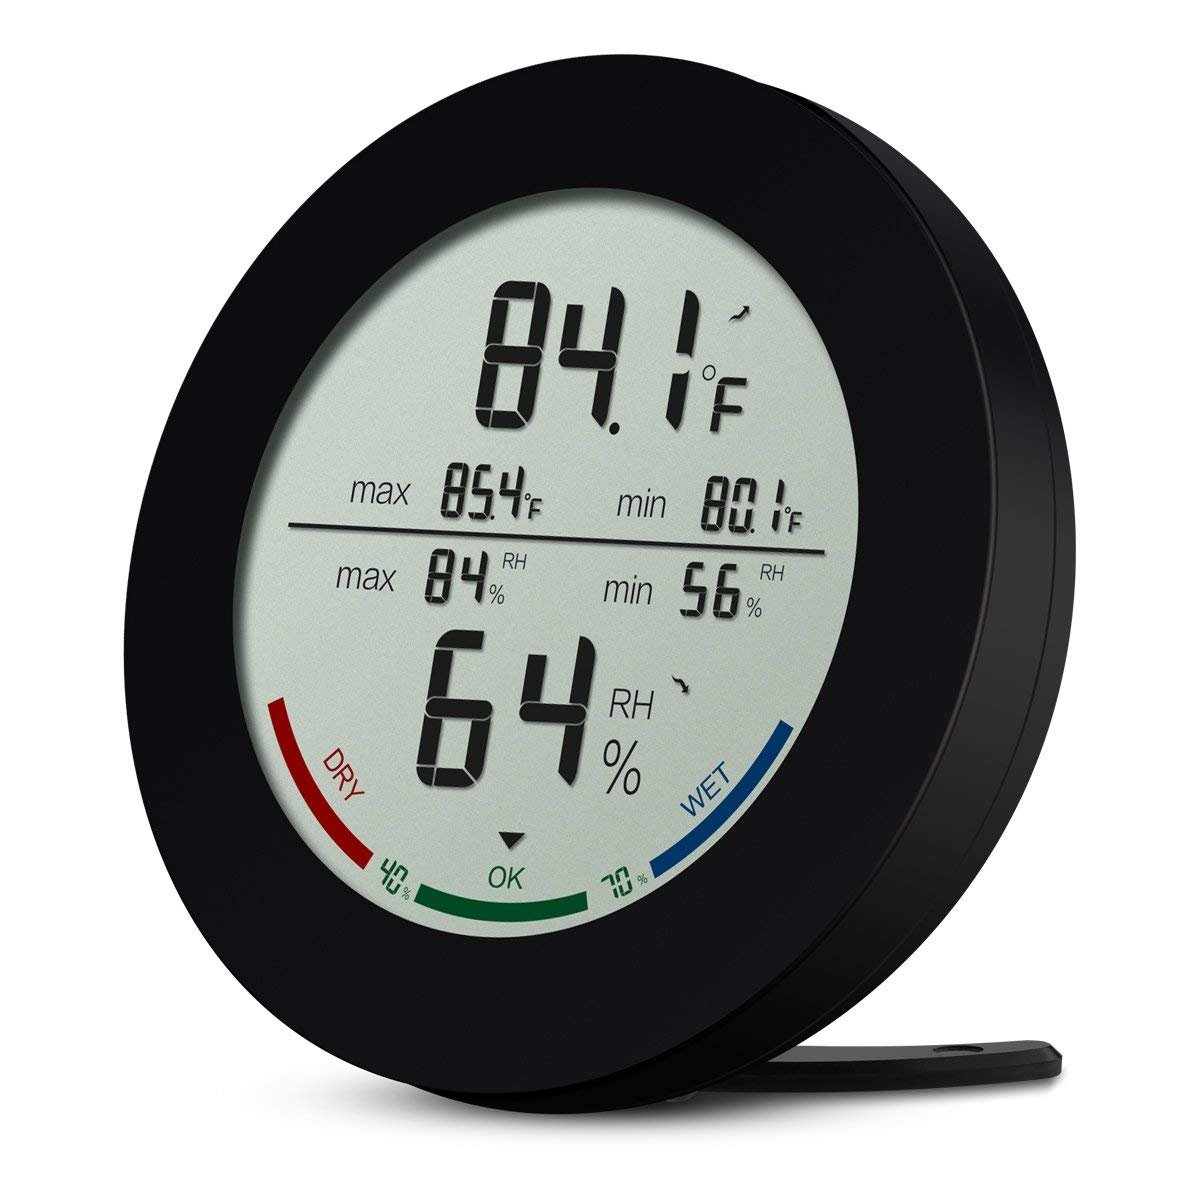 AMIR Digital Hygrometer, Indoor Outdoor Thermometer Hygrometer Monitor Temperature Humidity Gauge, Wireless Outdoor Hygrometer, ¡æ/¨H Switch Home, Office, Baby Room, etc (Mini-Black) AMIR WA10B Humidity Meters